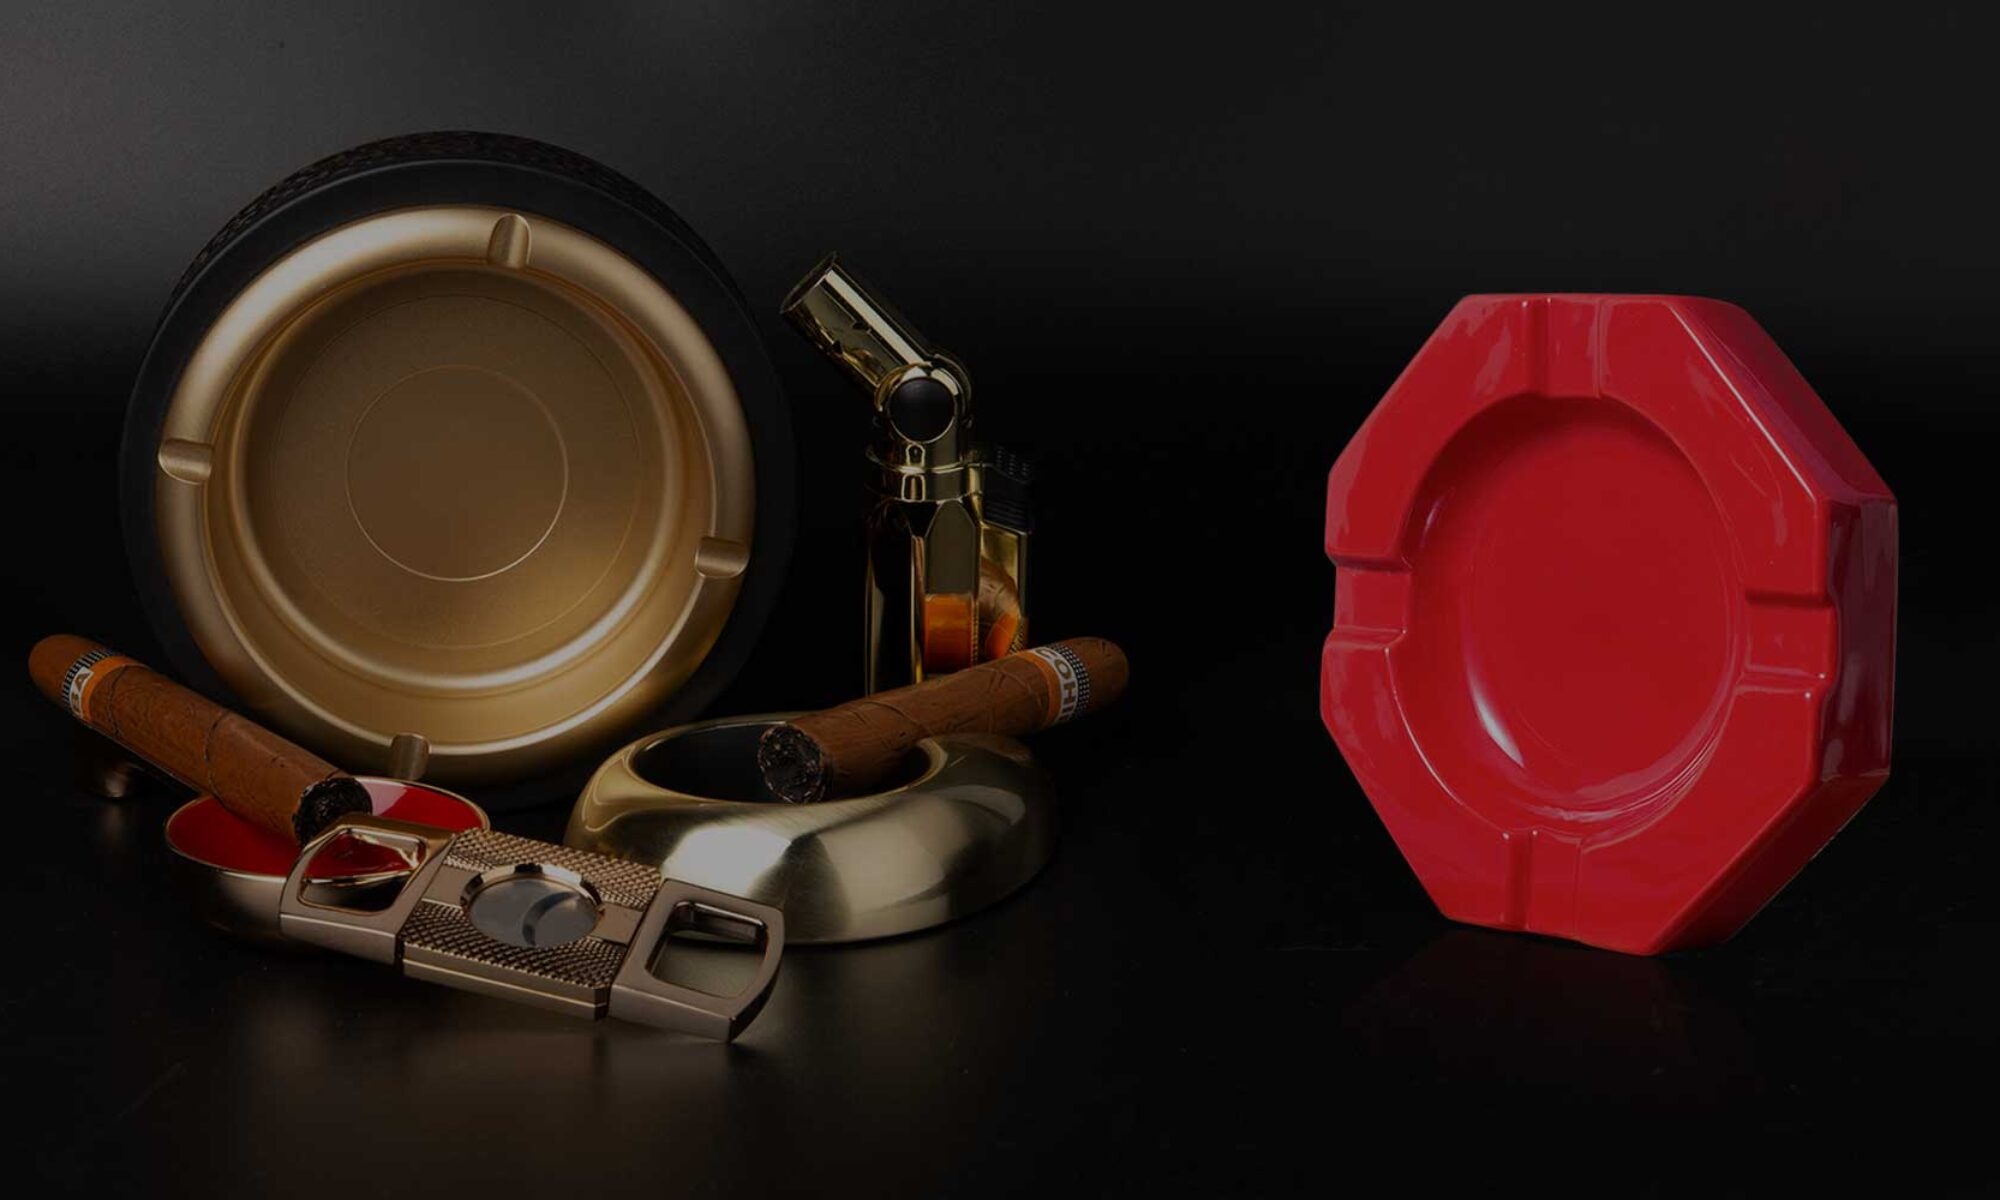 China Smoking Accessories ltd. manufacturers, supplies.